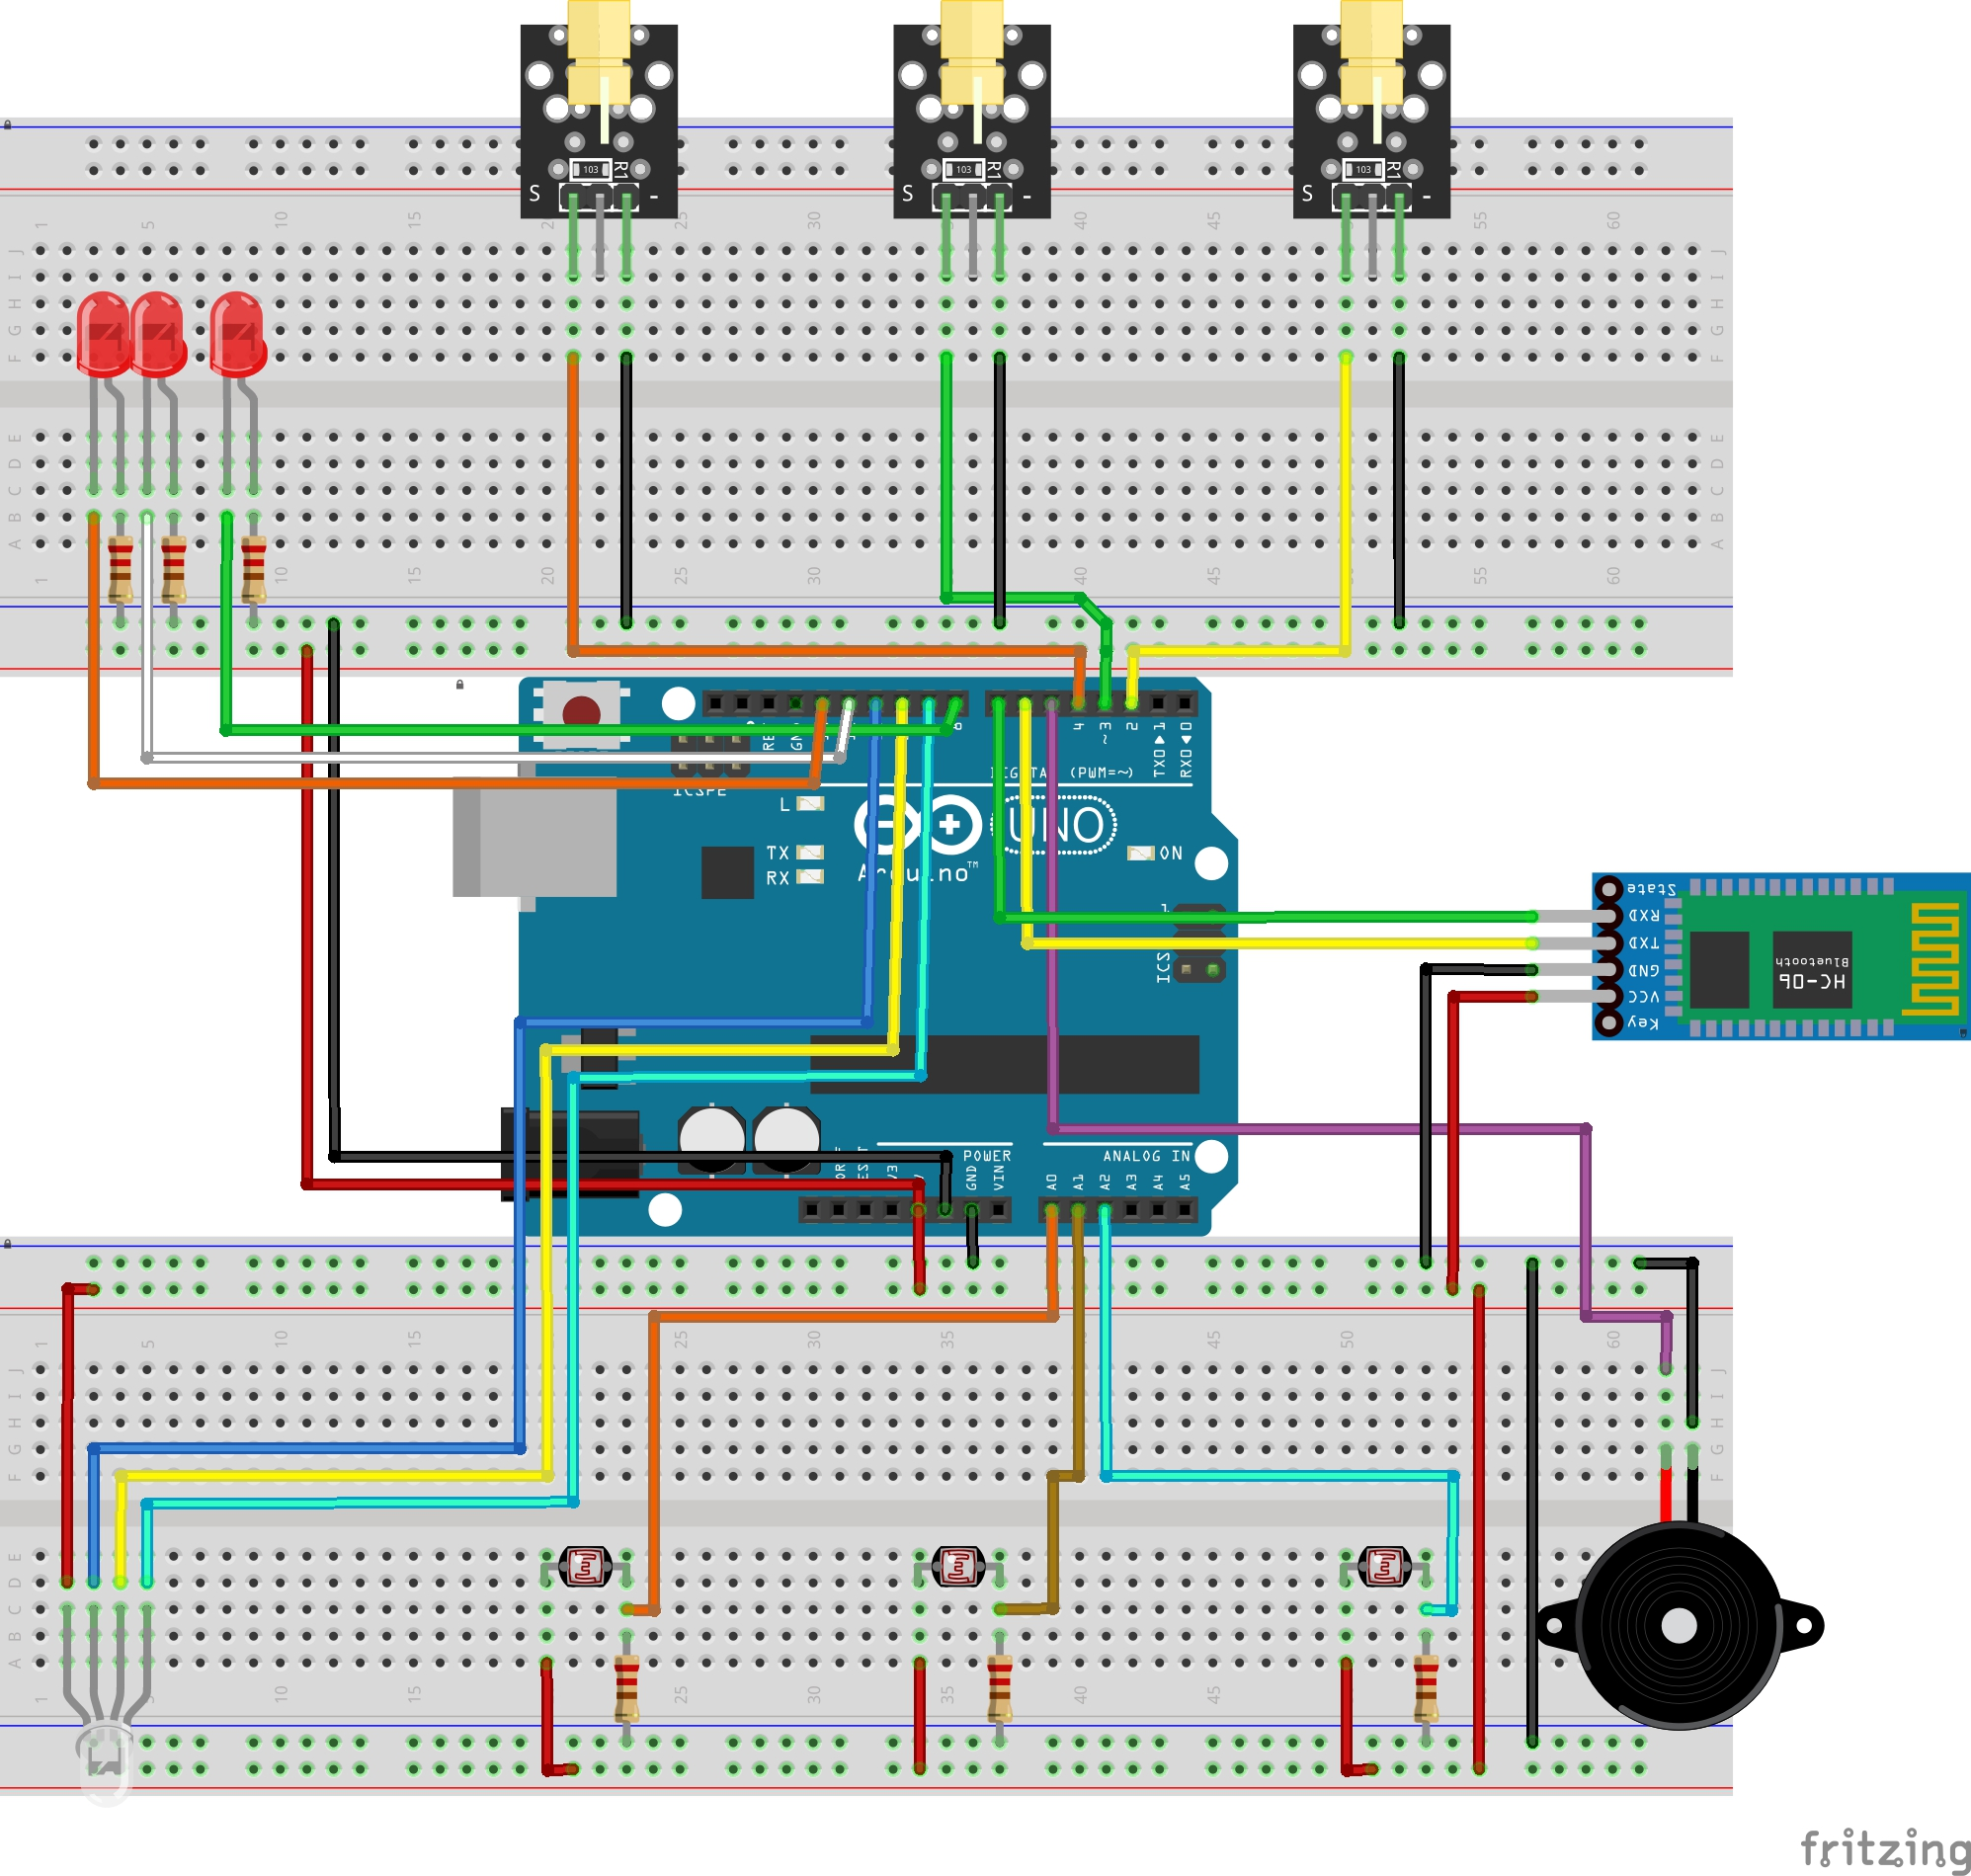 Create A People Counter Controlled By An Android App How To Make Laser Alarm Security Circuit On Breadboard Step With Lasers Bb Jxyntlcl8r